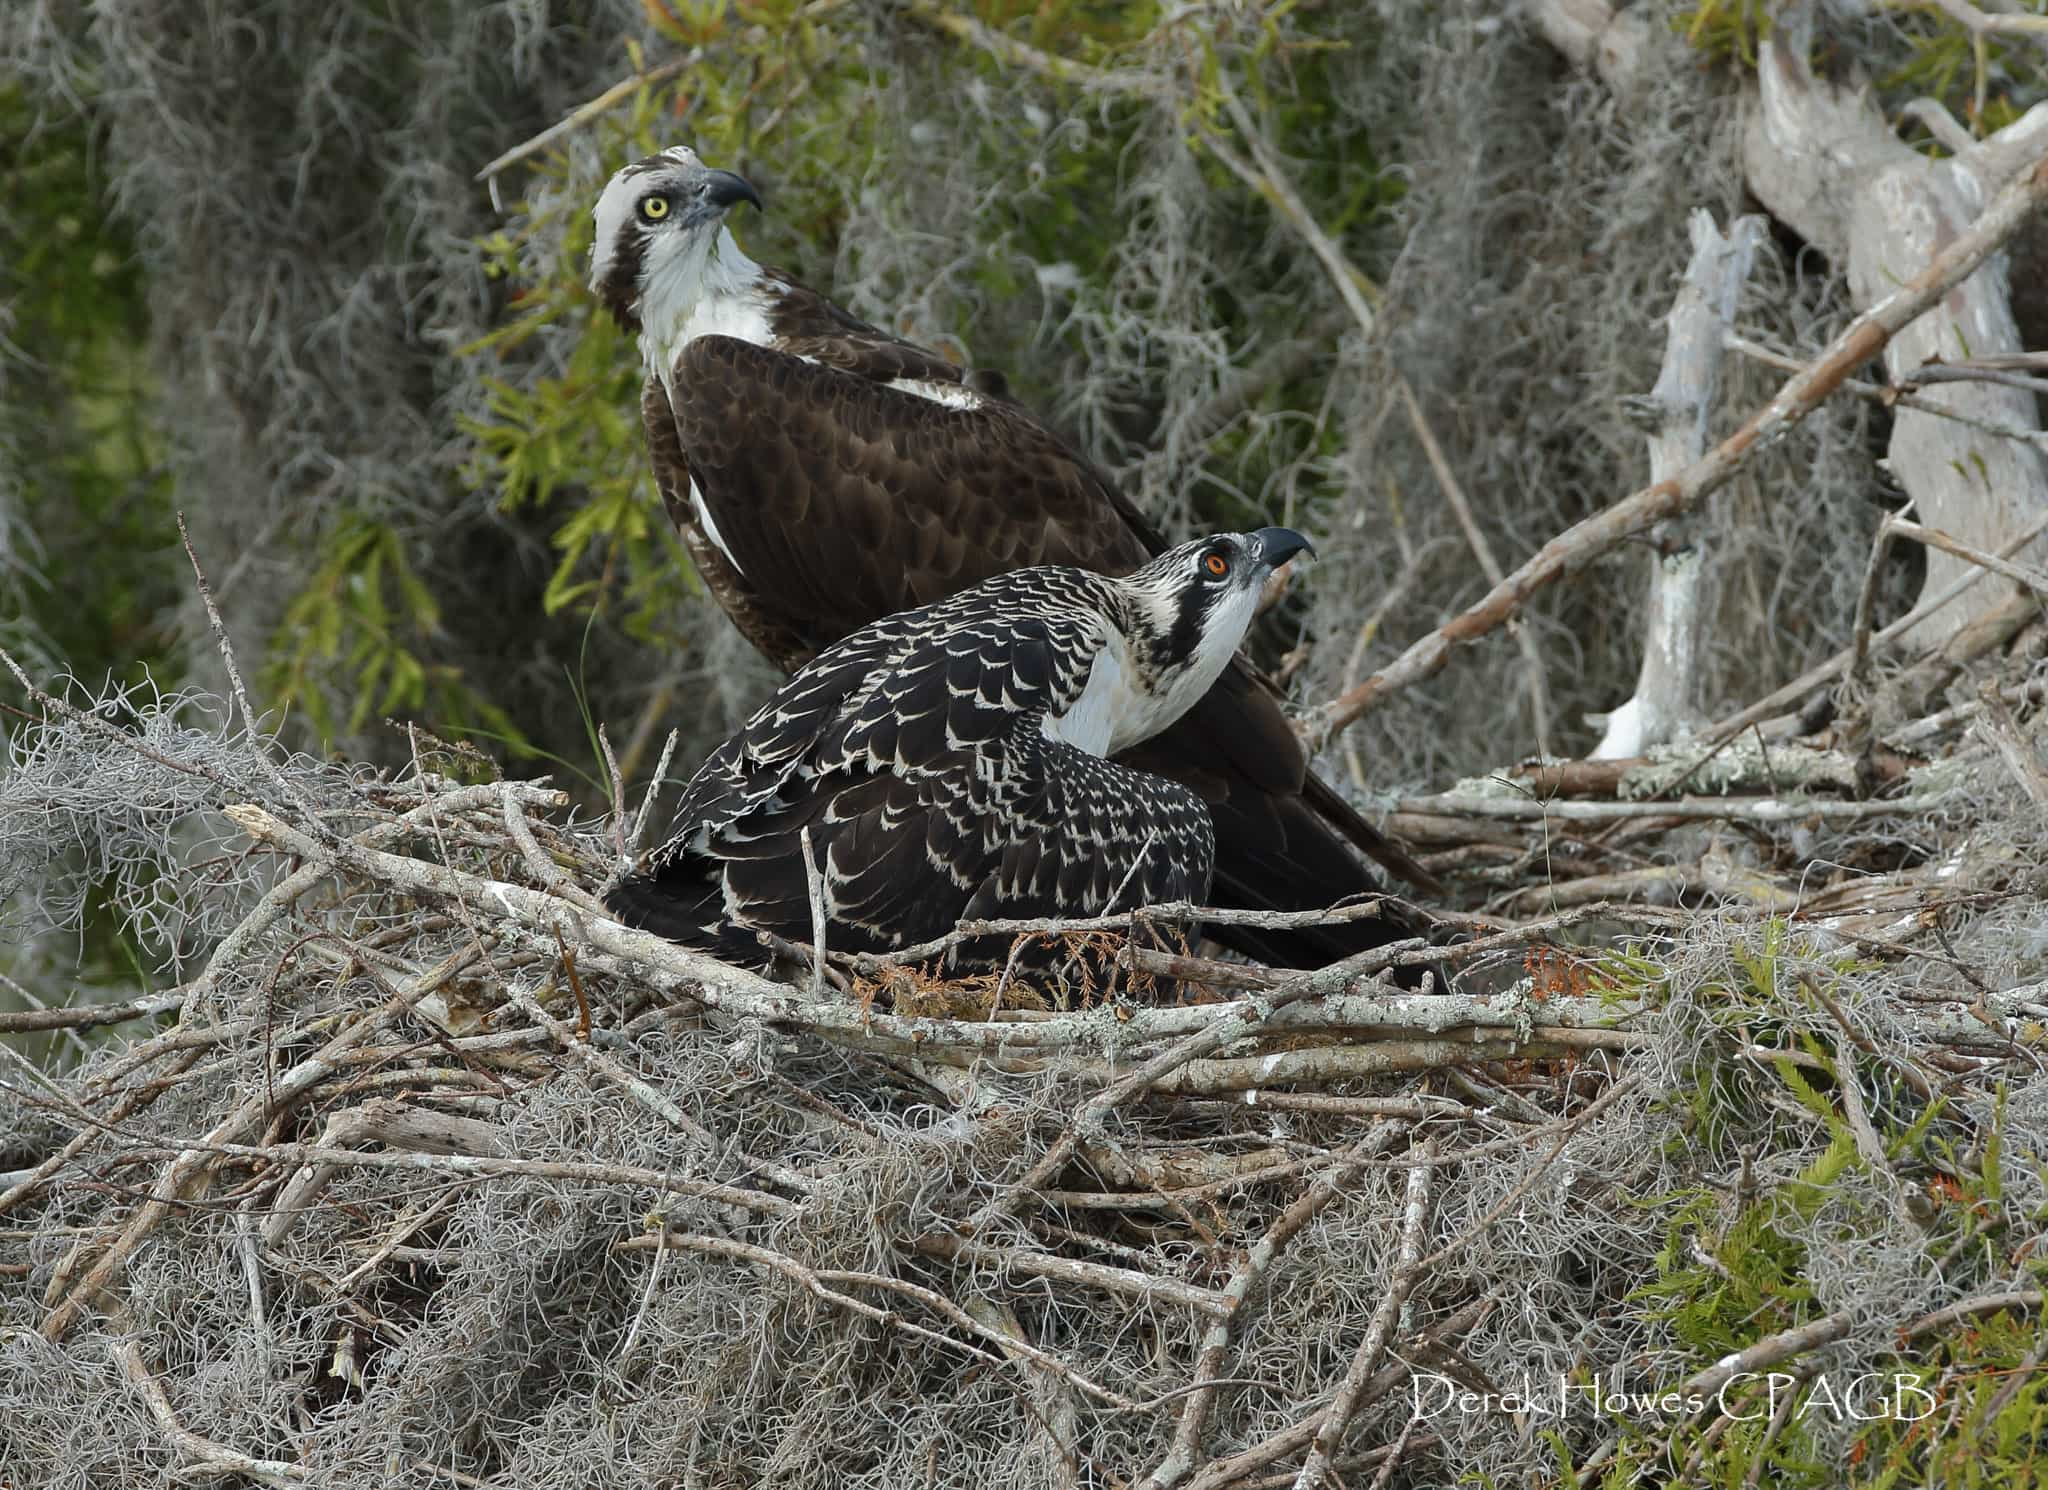 One of the parent Ospreys guards the nest & the precious offspring within - photographed on the NaturesLens Osprey Photography Holiday conducted in Florida during April 2016